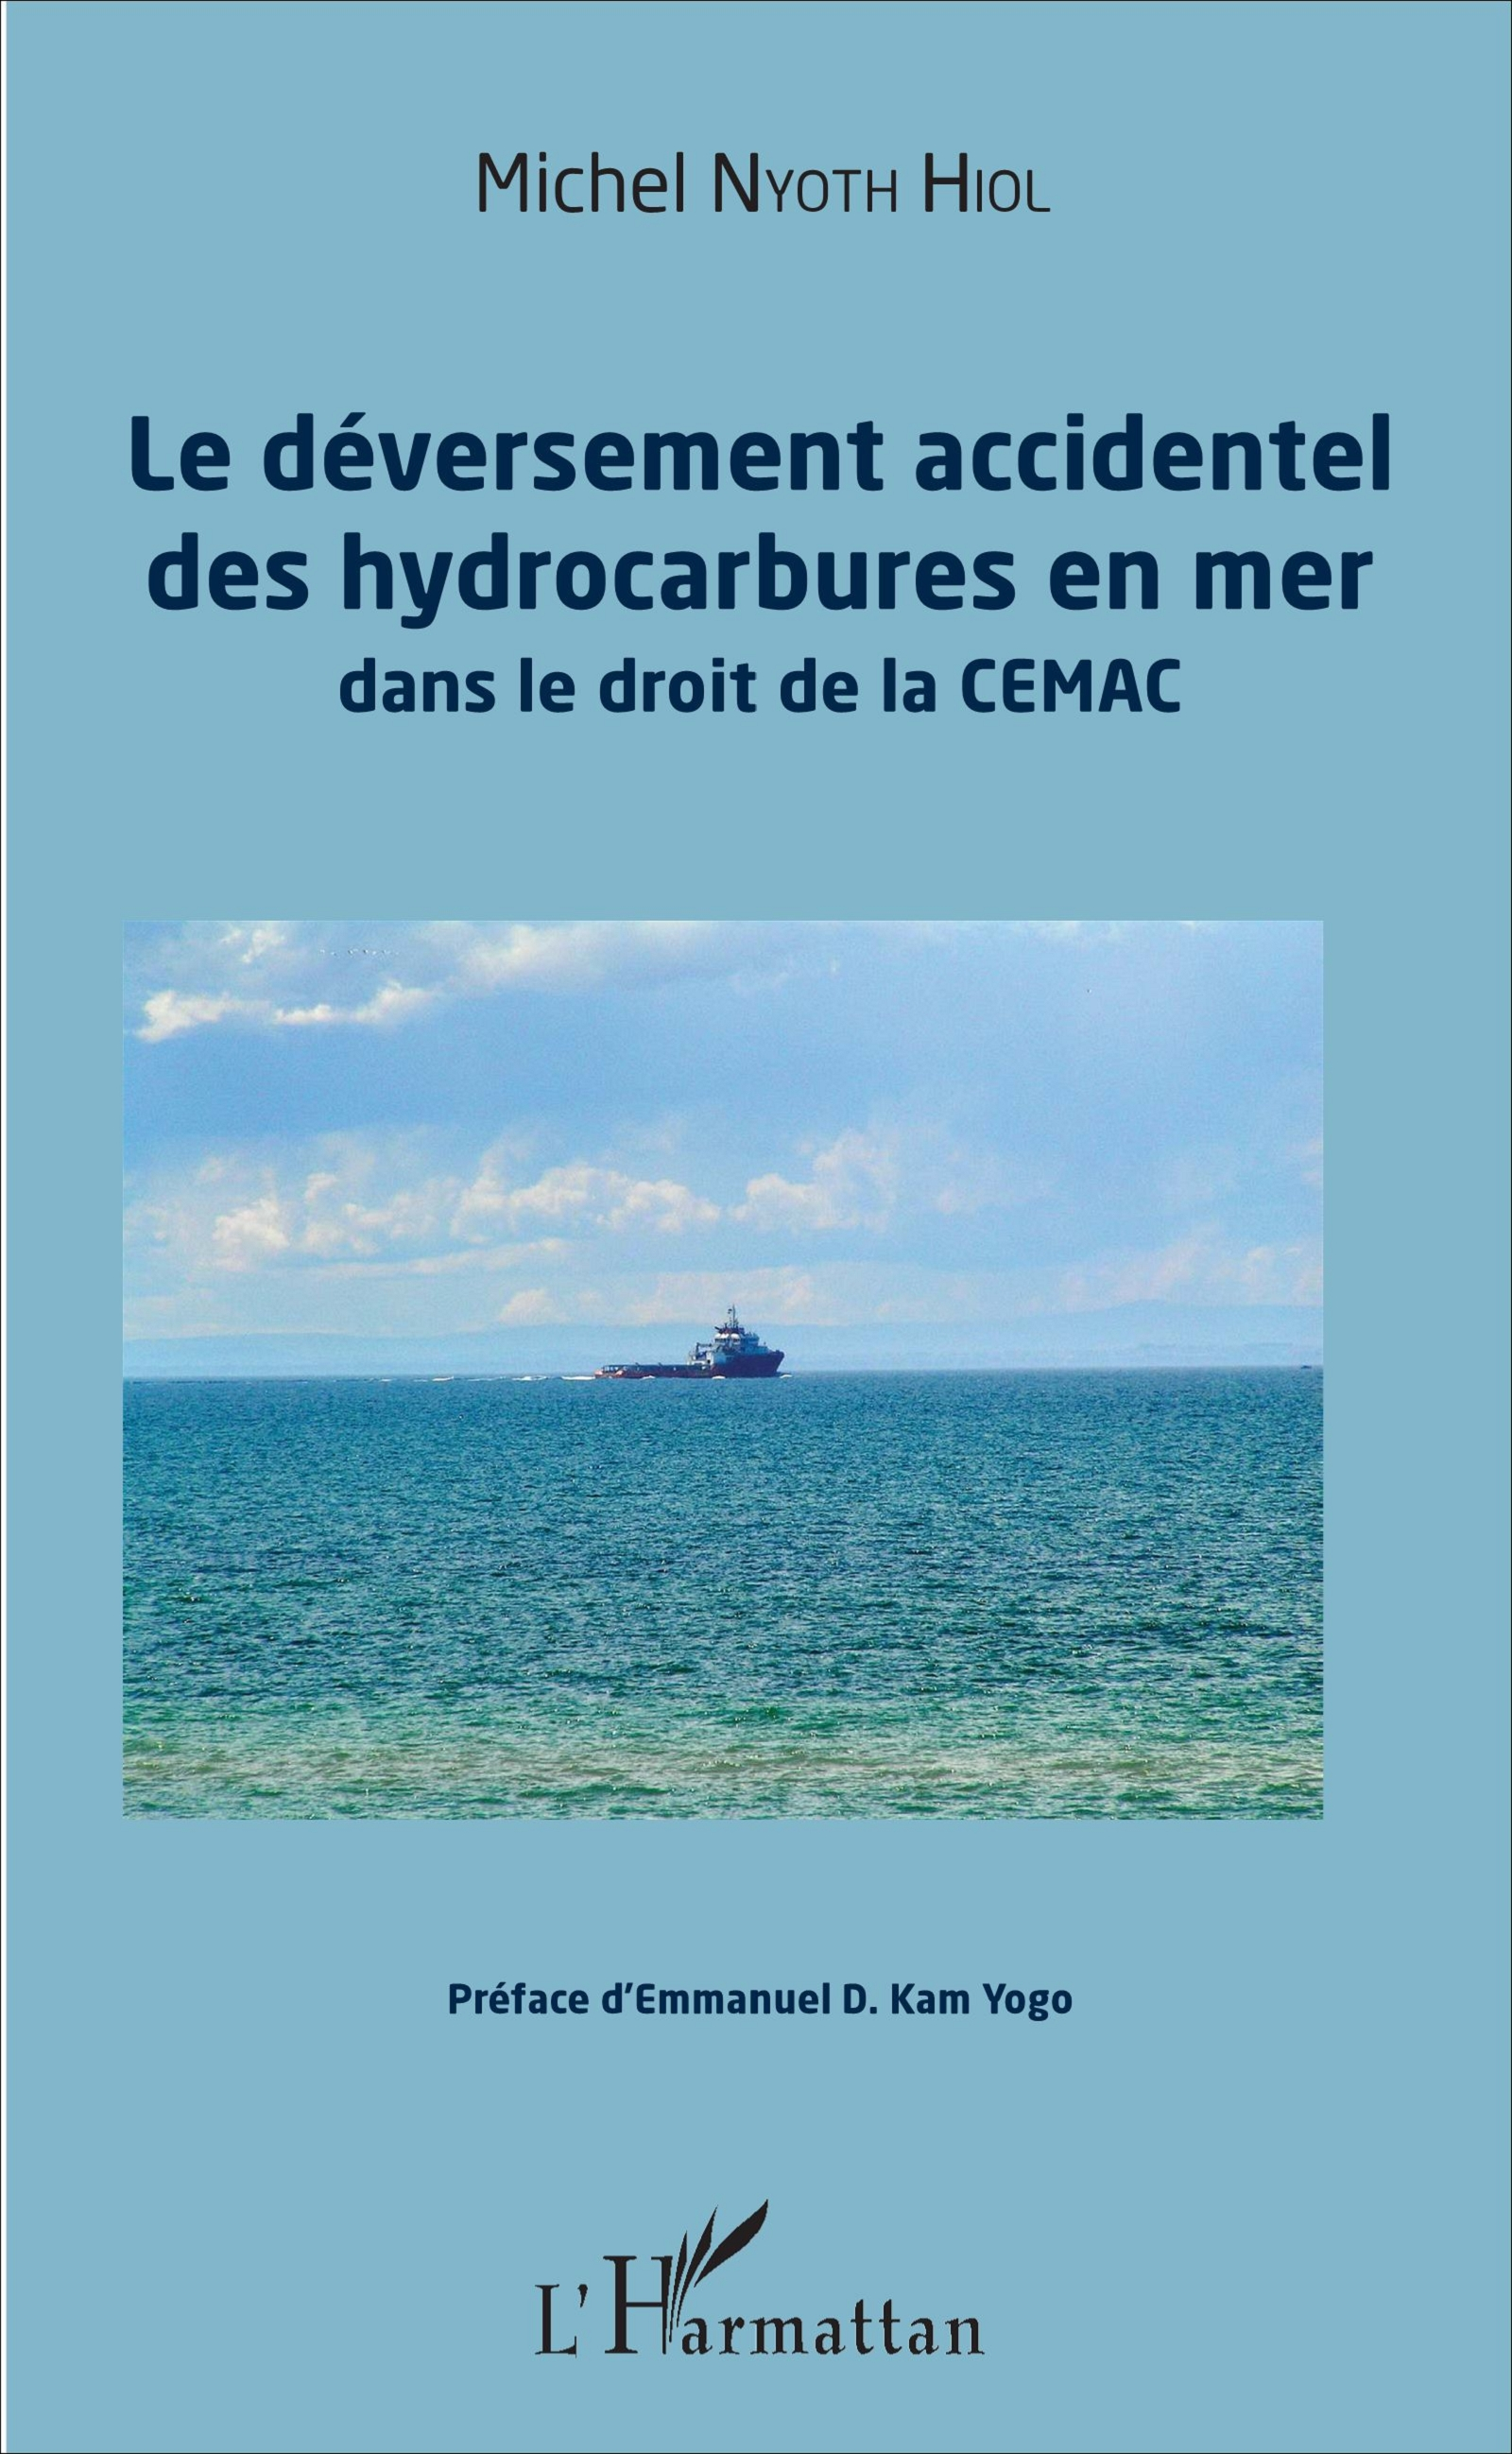 Déversement accidentel des hydrocarbures en mer (Le)